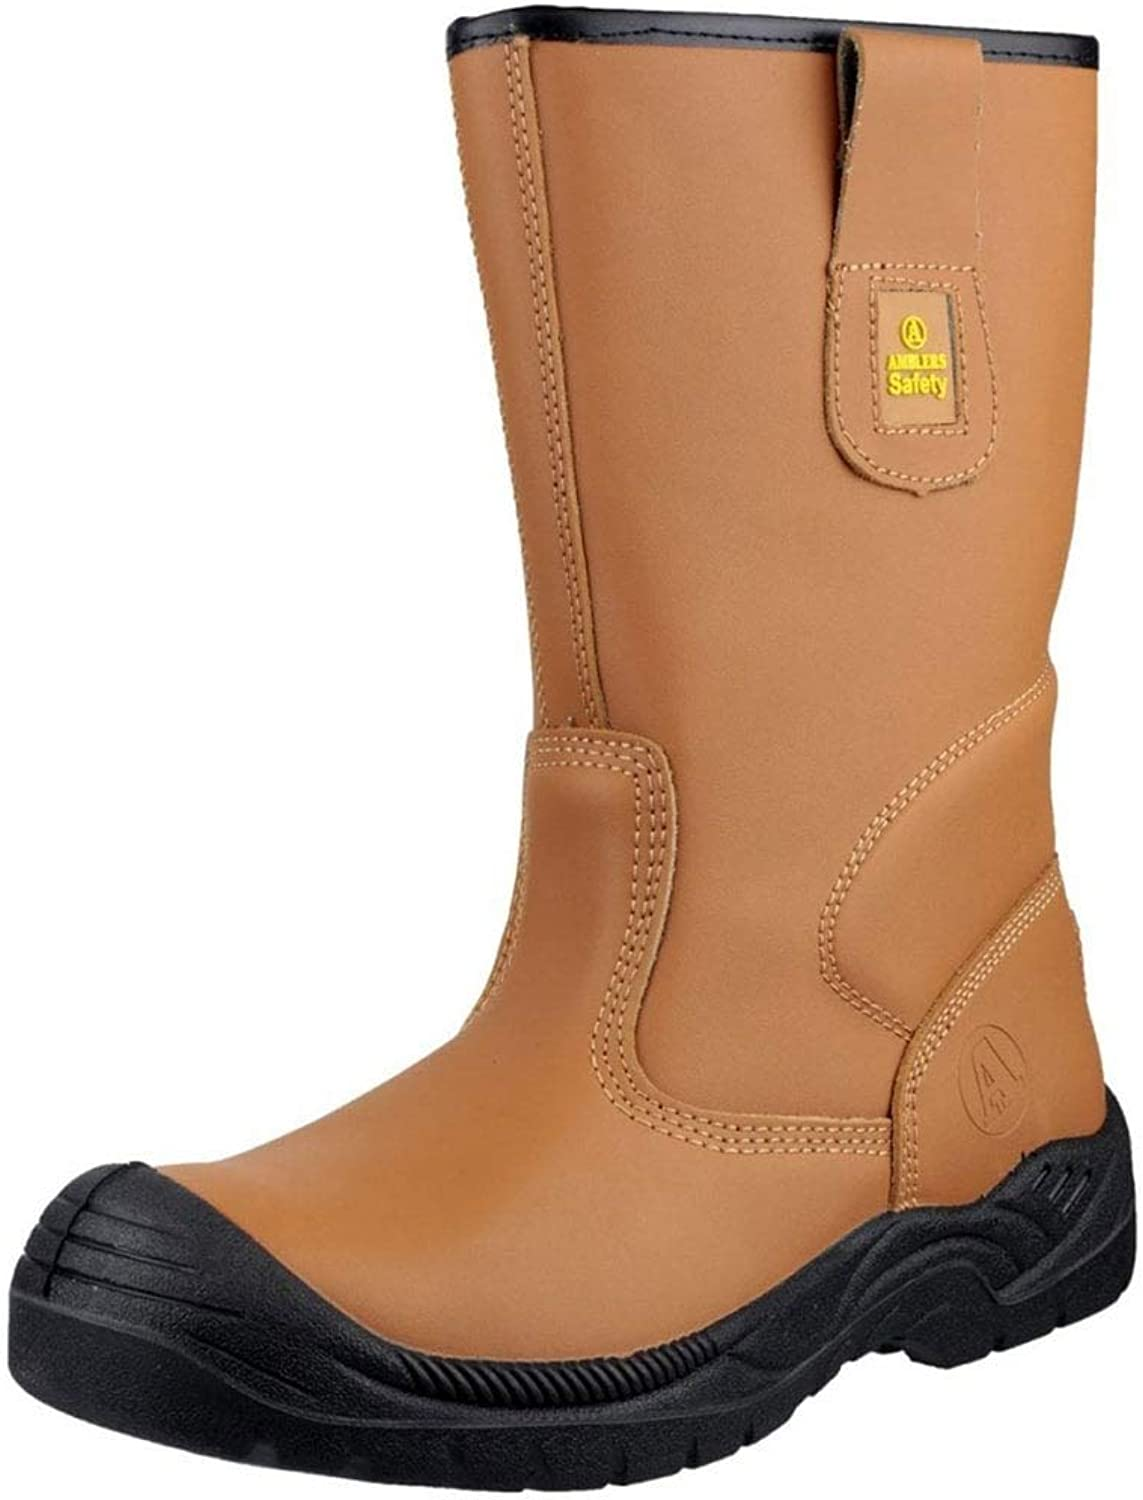 Amblers Safety Mens FS142 Water Resistant Pull On Safety Rigger Boot Tan Size UK 12 EU 47